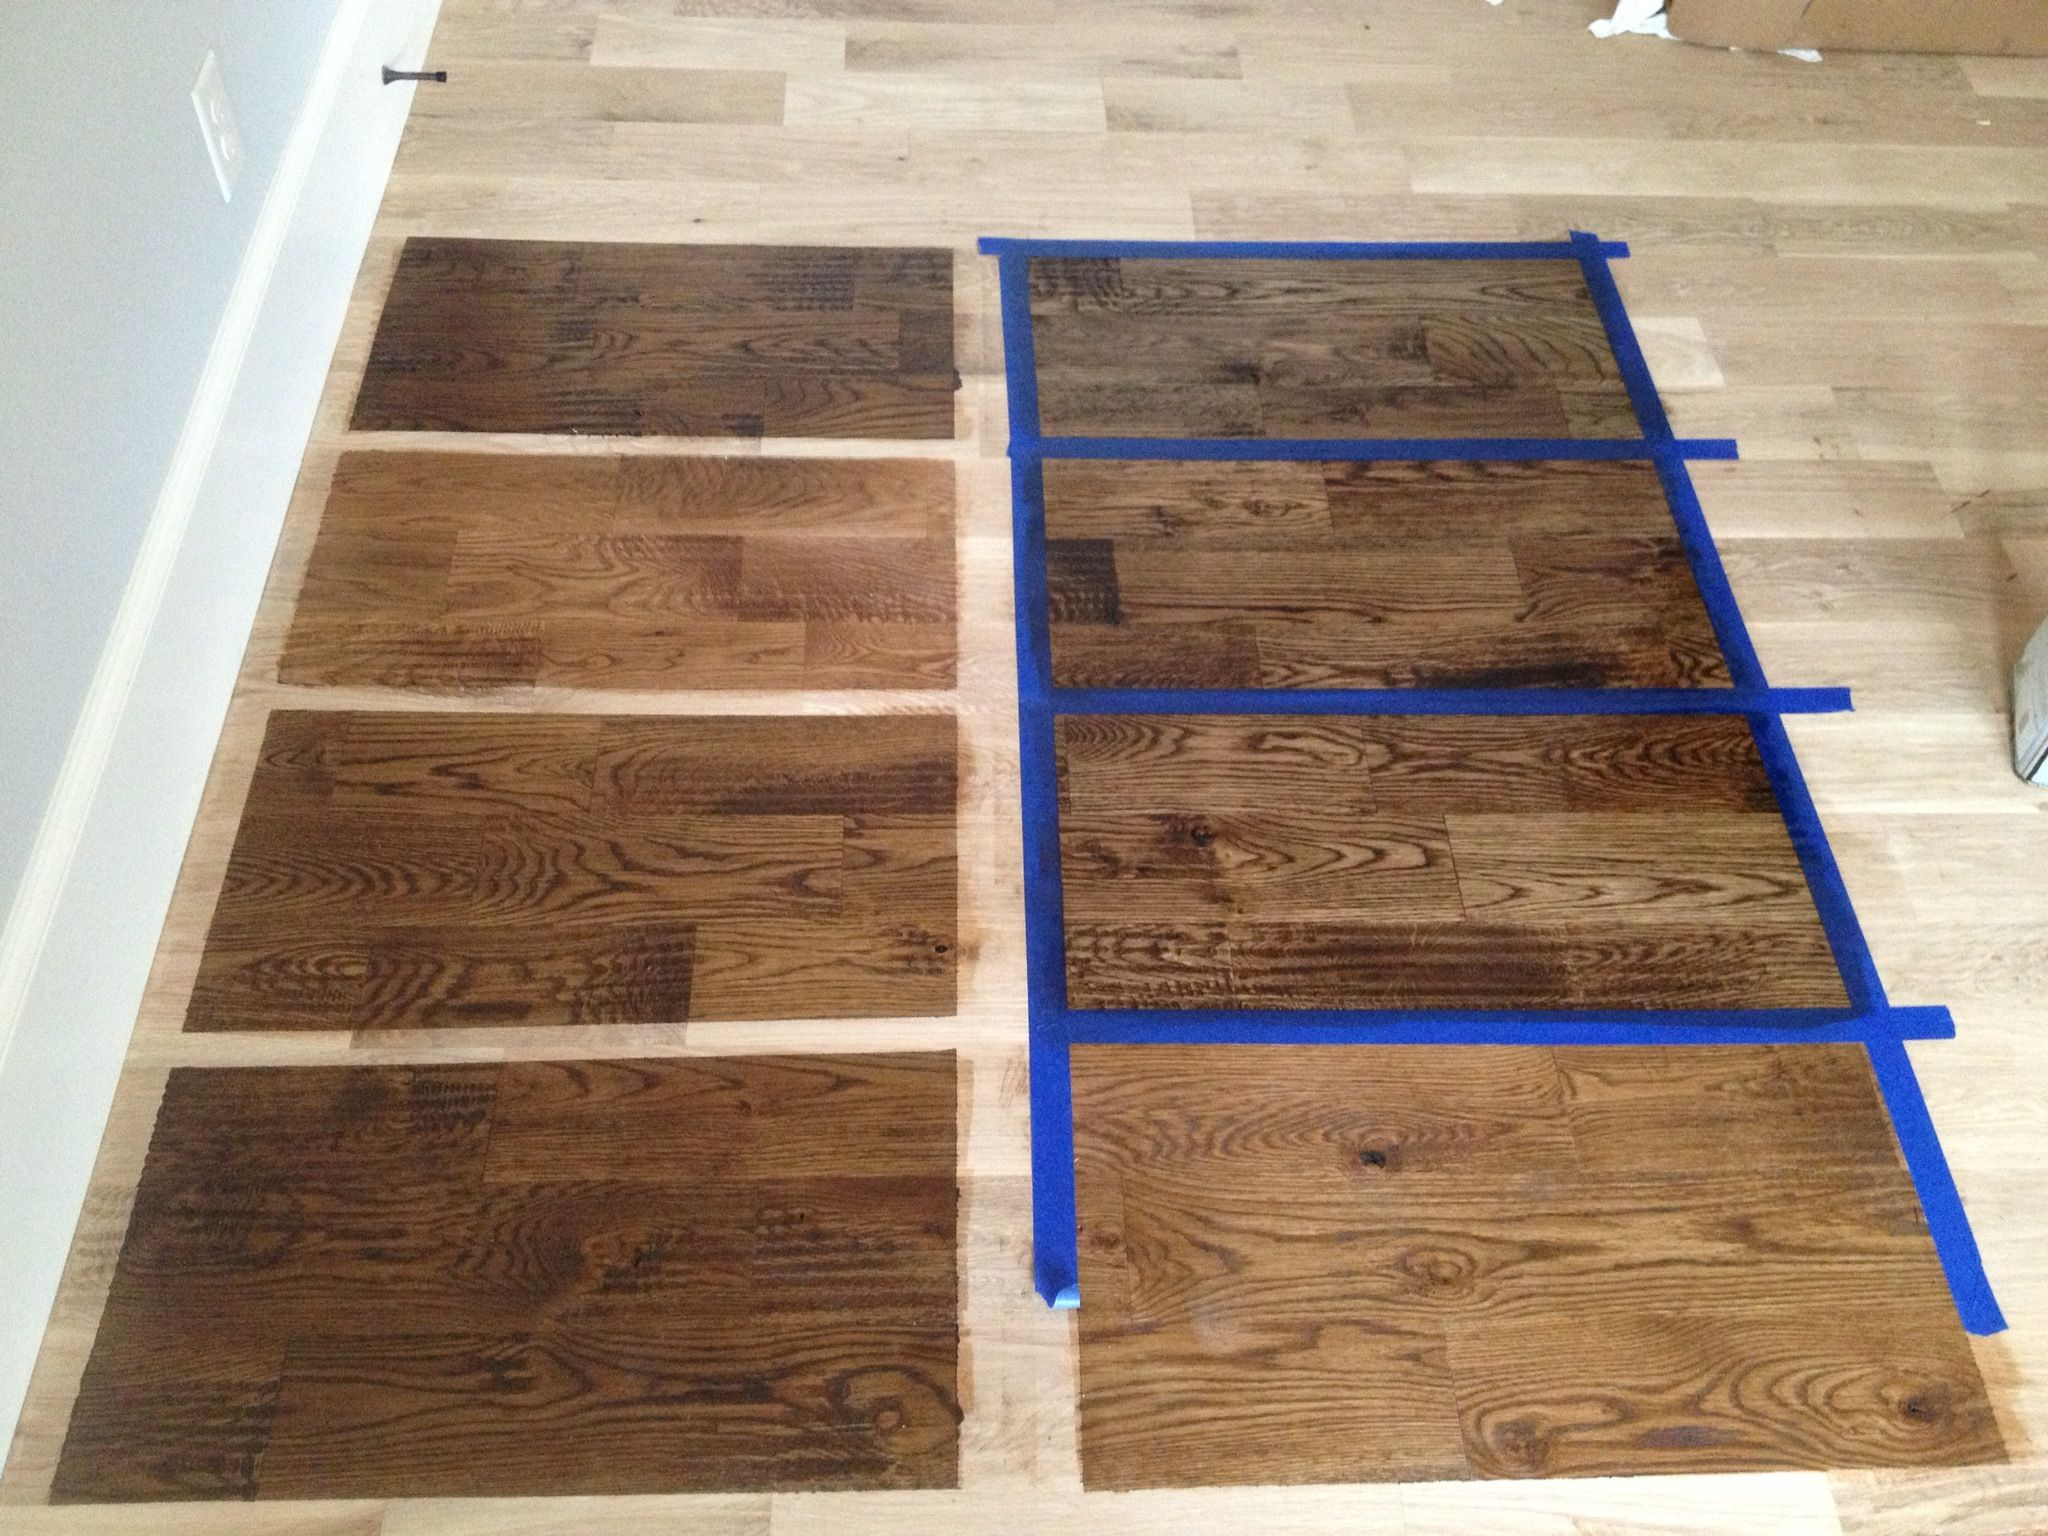 Duraseal stains on white oak: Left column from the top:  spicy brown/ nutmeg/ medium brown/ antique brown  Right column from the top:  ebony/ antique brown + ebony + coffee/ ebony+ chestnut+ coffee/ english chestnut with antique brown